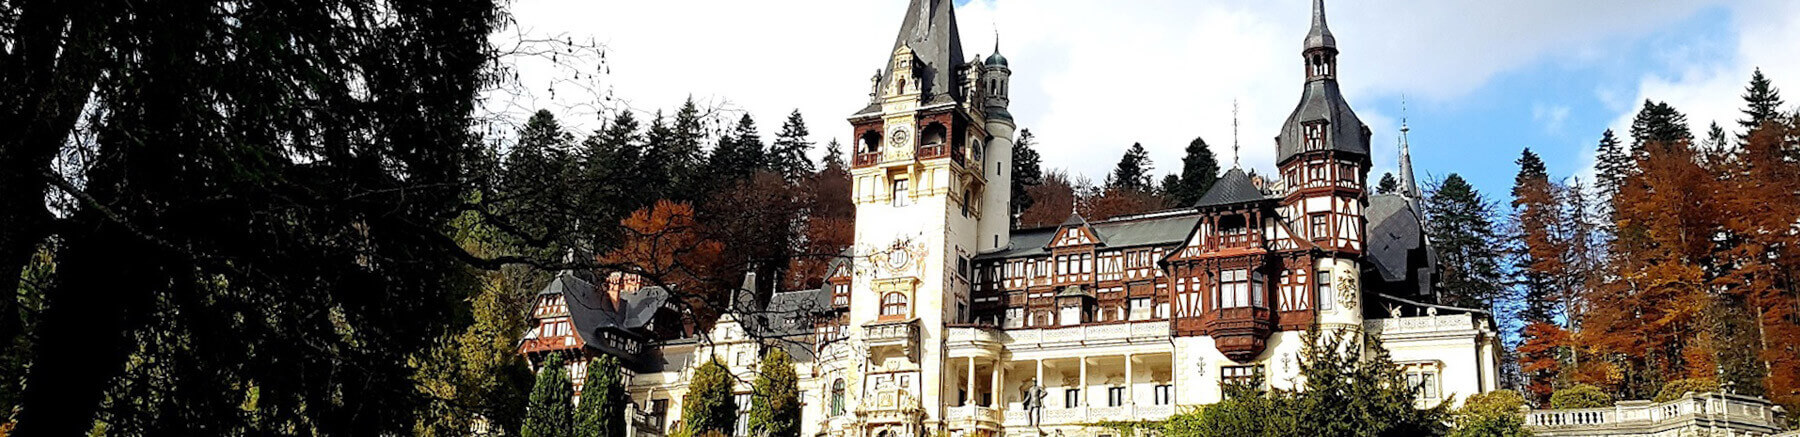 Close view of Peleș Castle in Romania in autumn